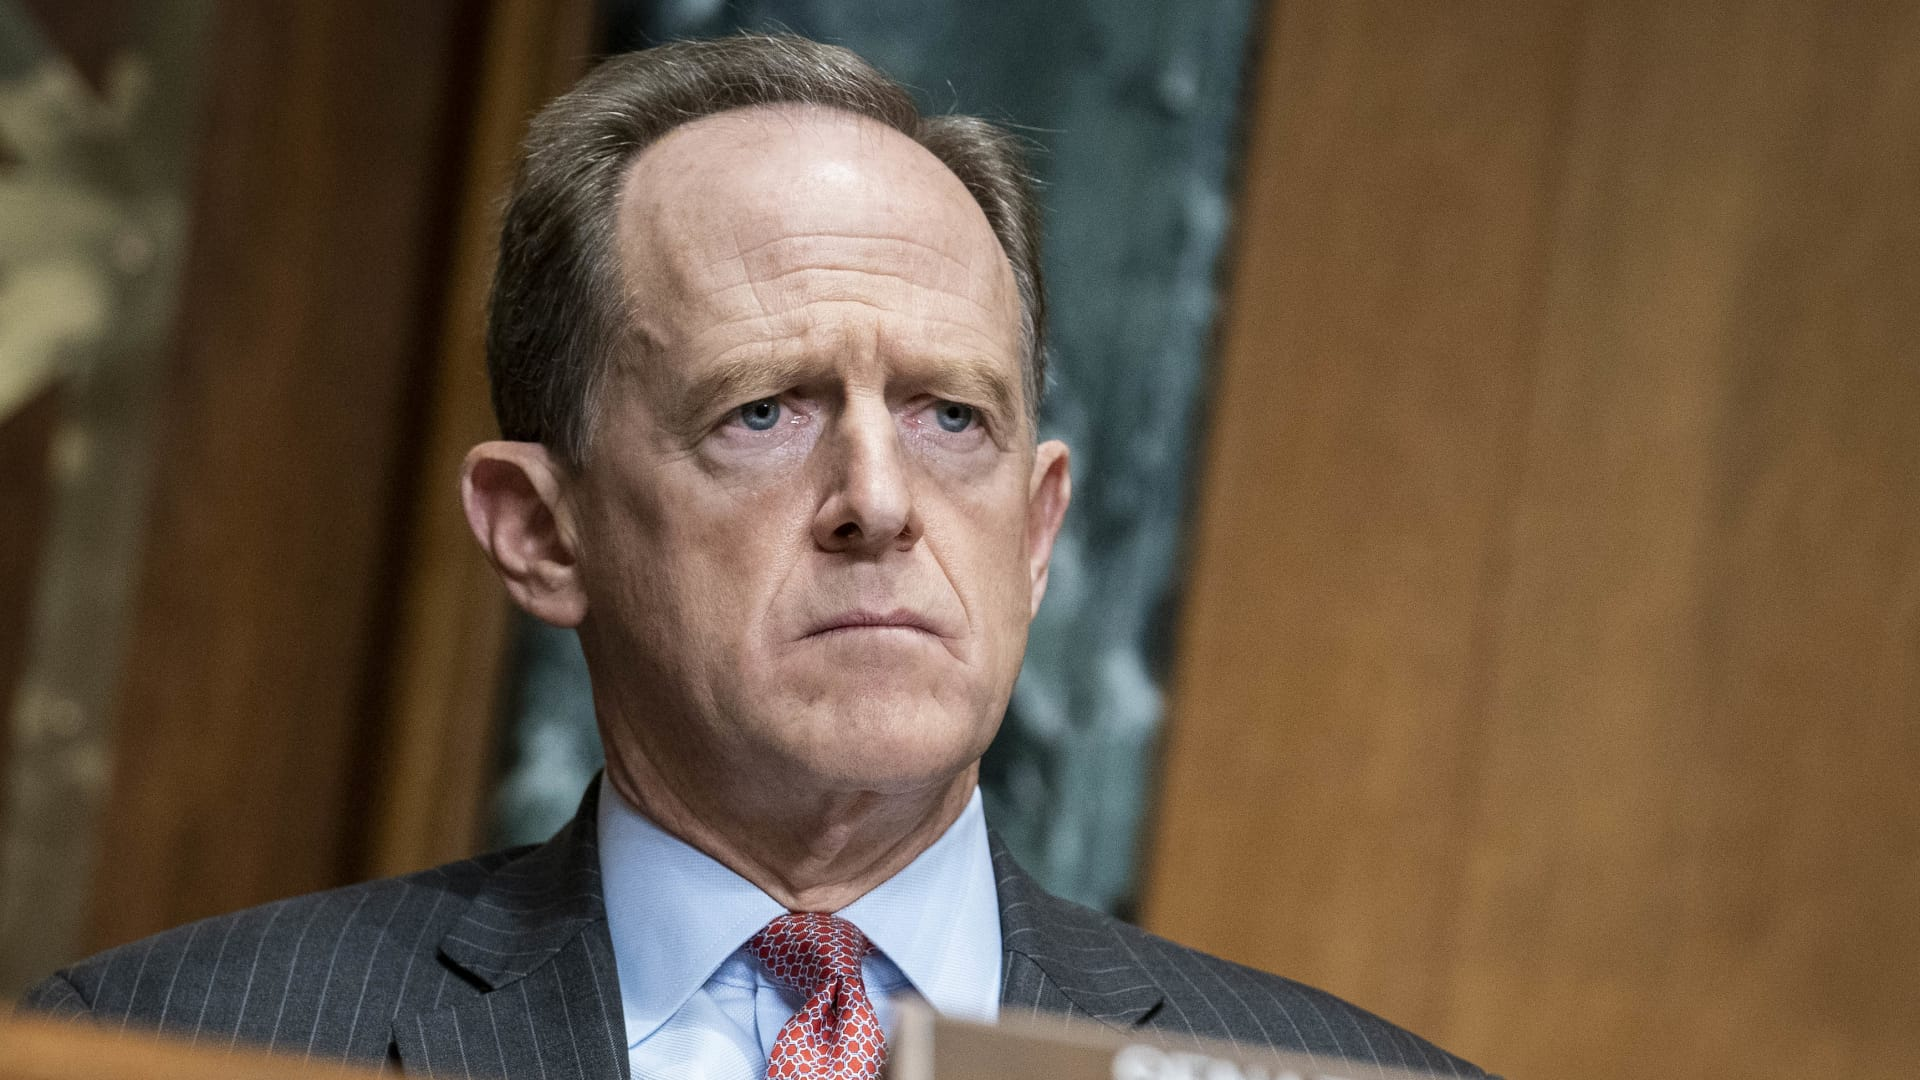 Senator Pat Toomey (R-PA) questions Treasury Secretary Steven Mnuchin during a hearing of the Congressional Oversight Commission on December 10, 2020 on Capitol Hill in Washington, DC.